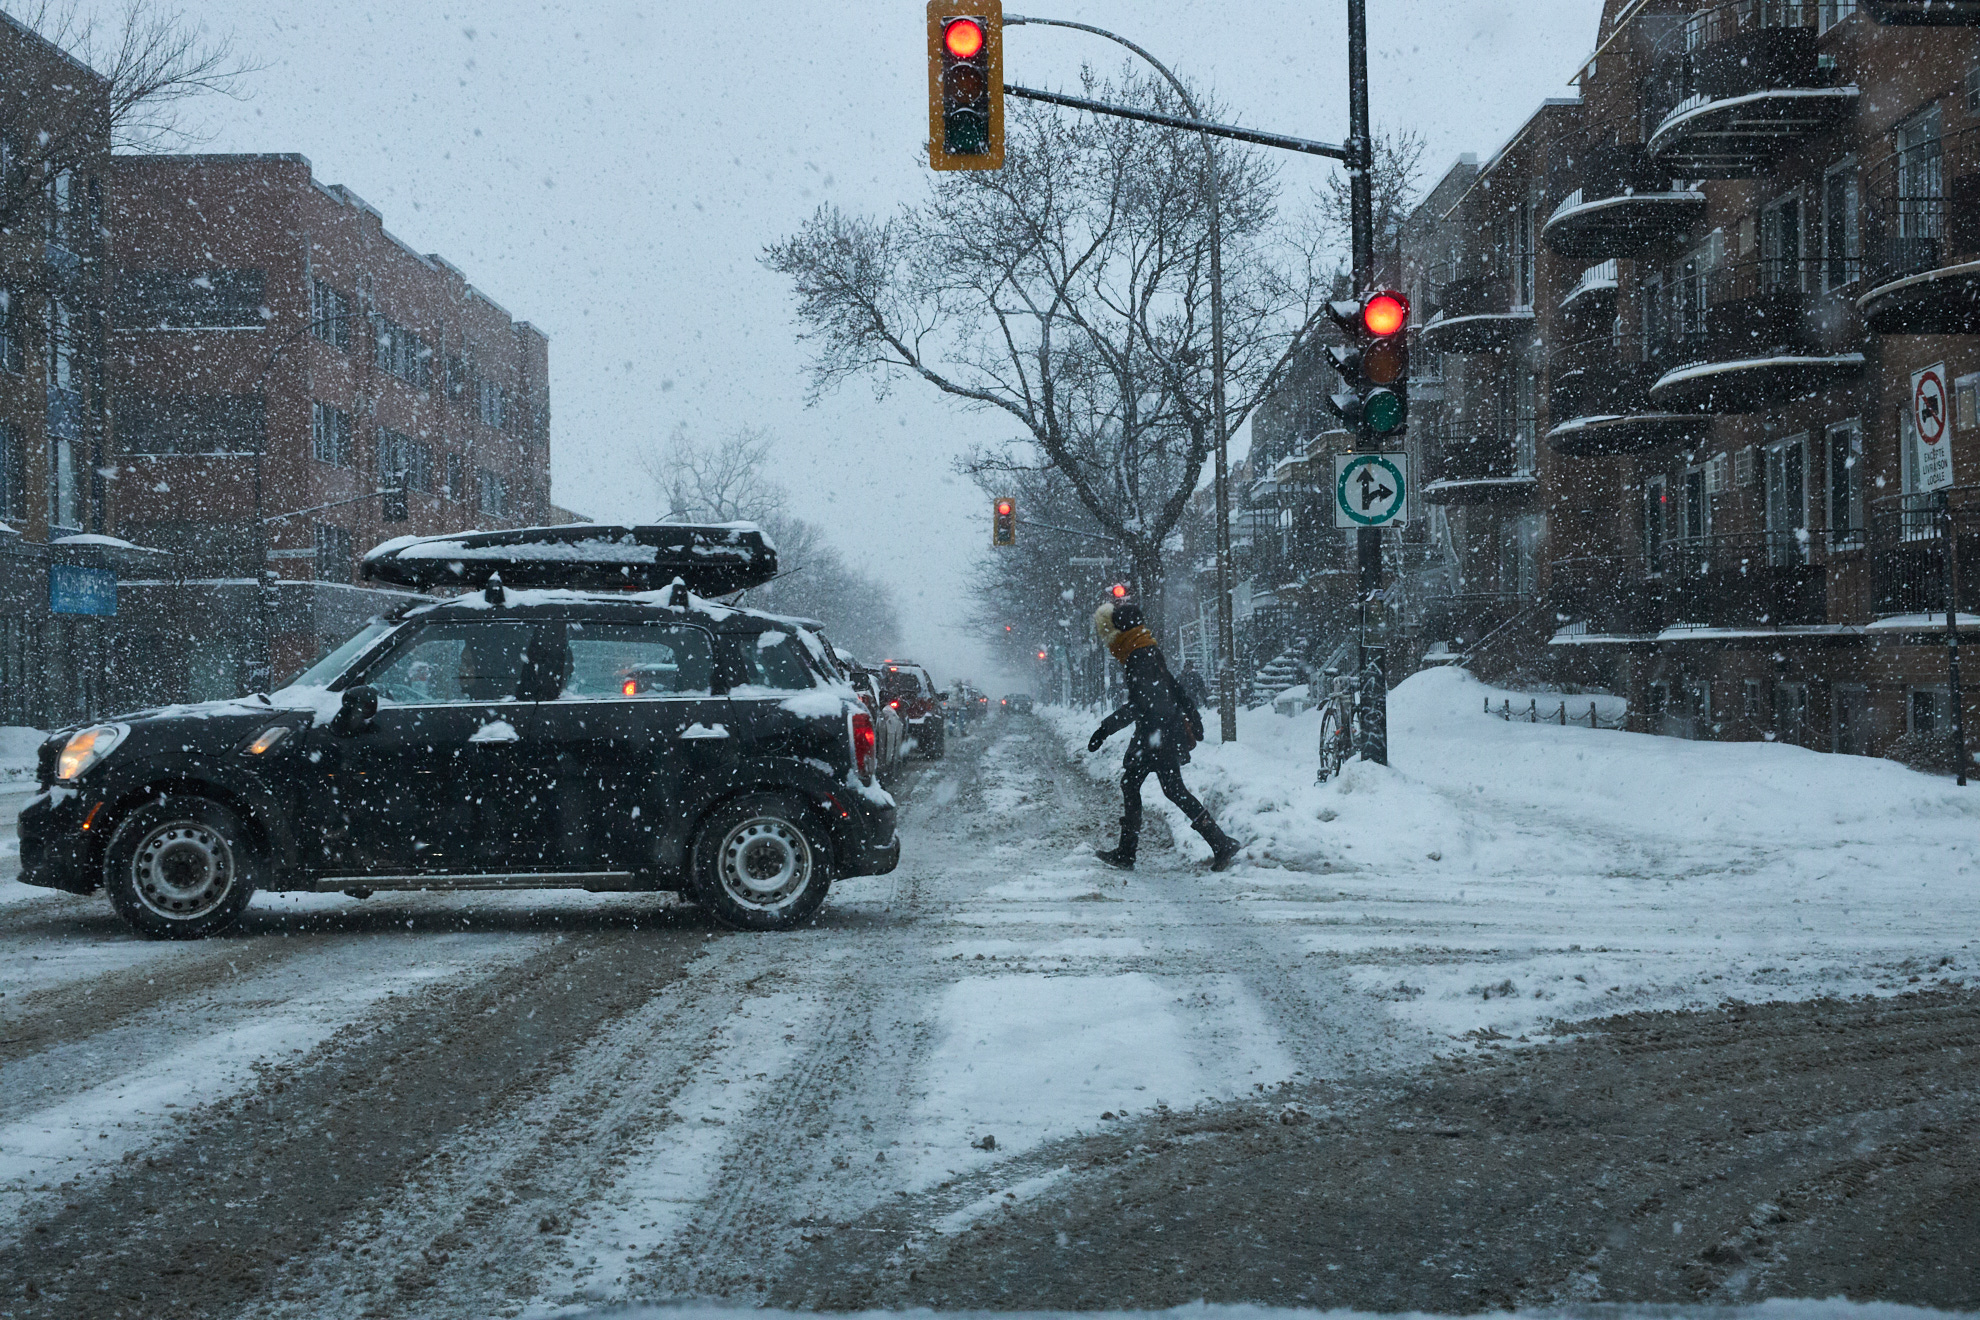 Cars and pedestrians cross a snowy intersection in Montreal